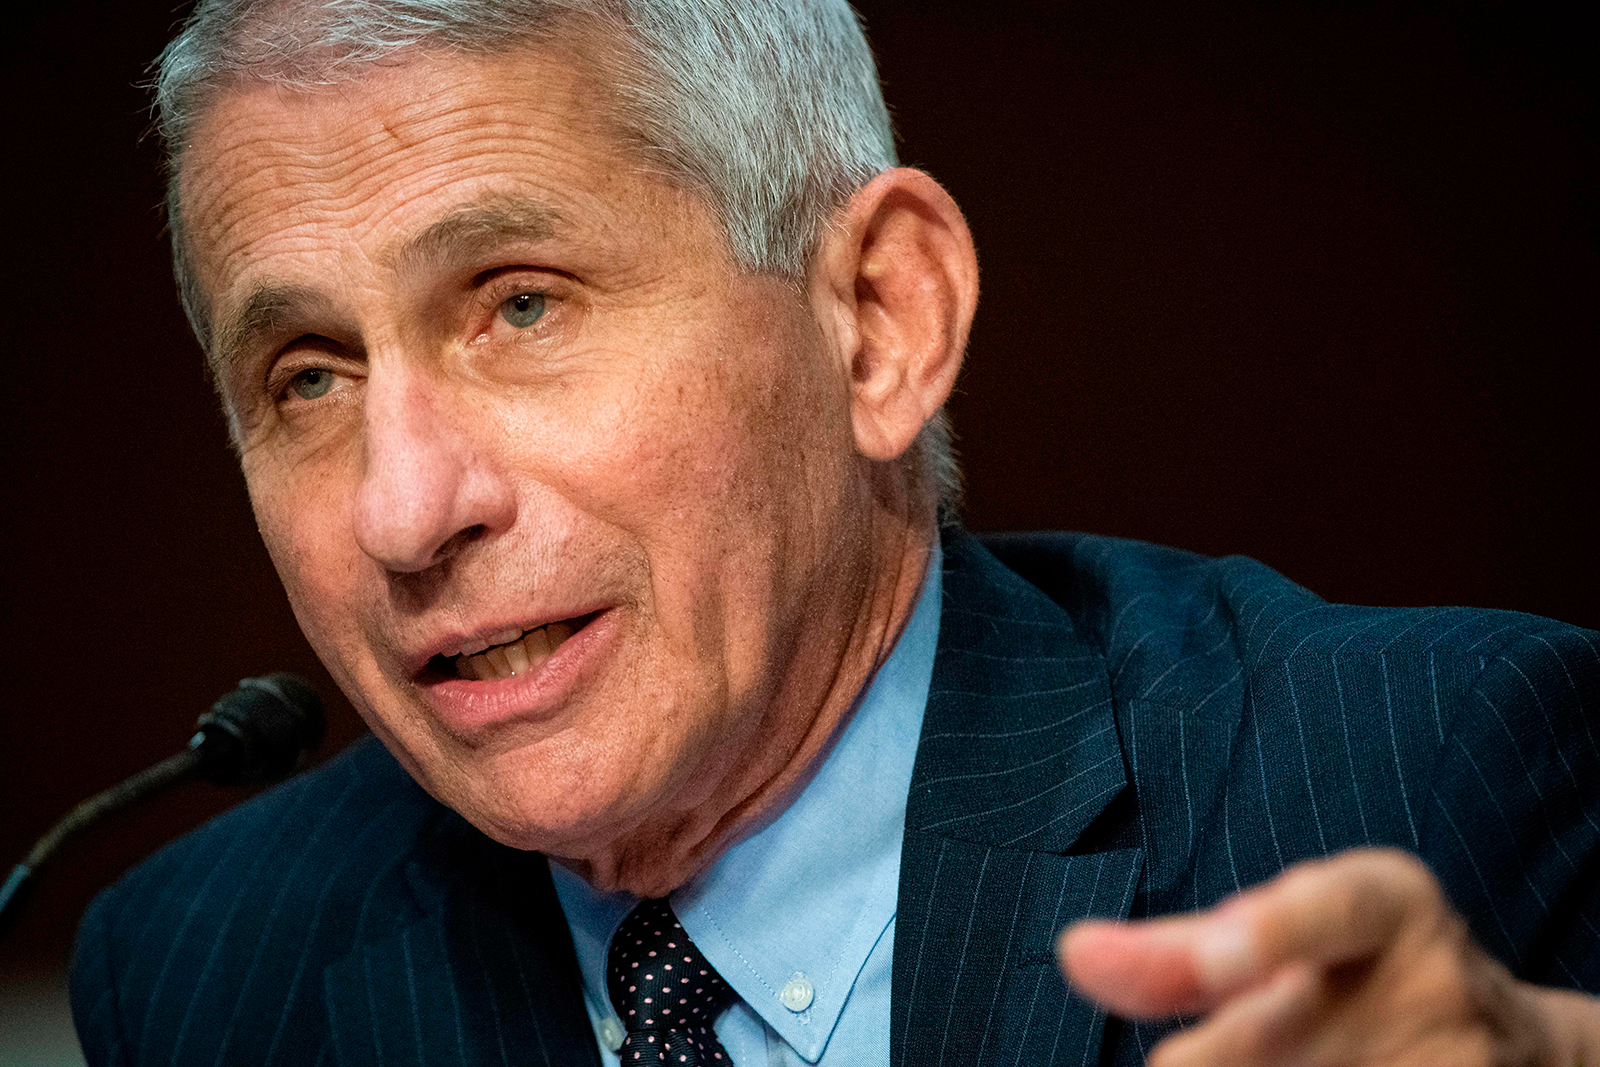 Anthony Fauci, director of the National Institute of Allergy and Infectious Diseases, speaks during a Senate hearing in Washington, DC, on June 30.